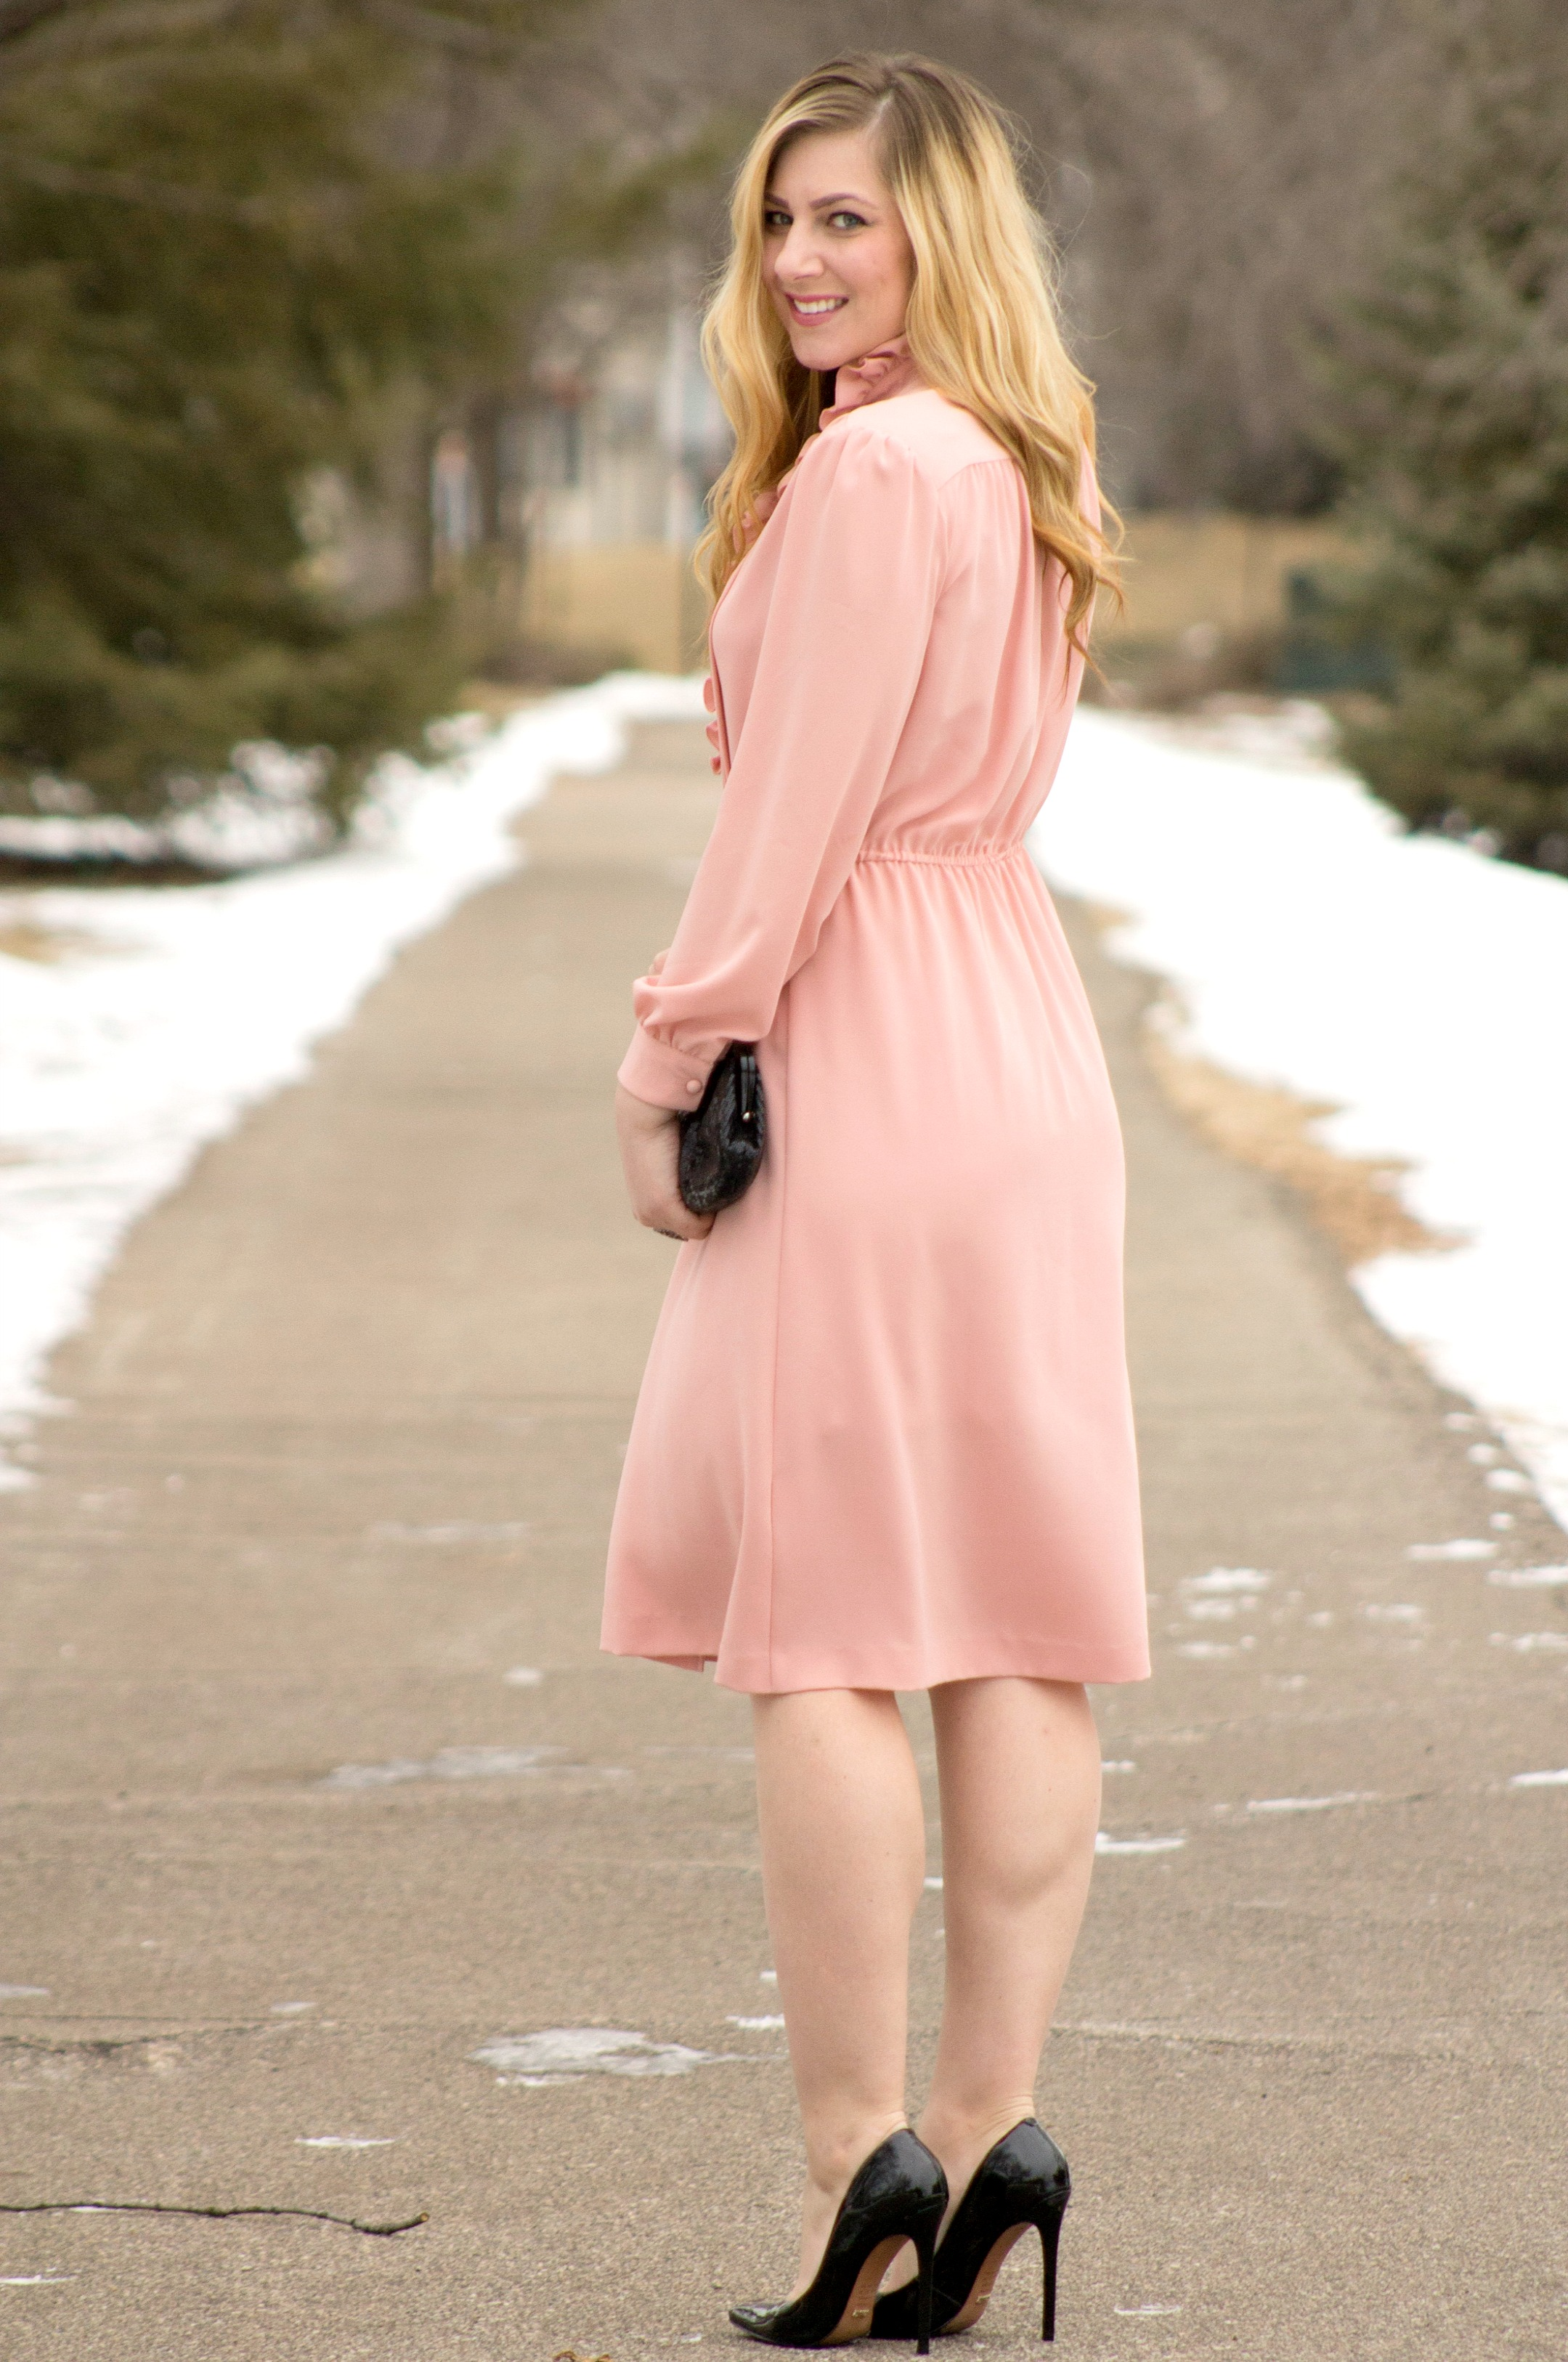 Pink Dress And Black Heels - Is Heel